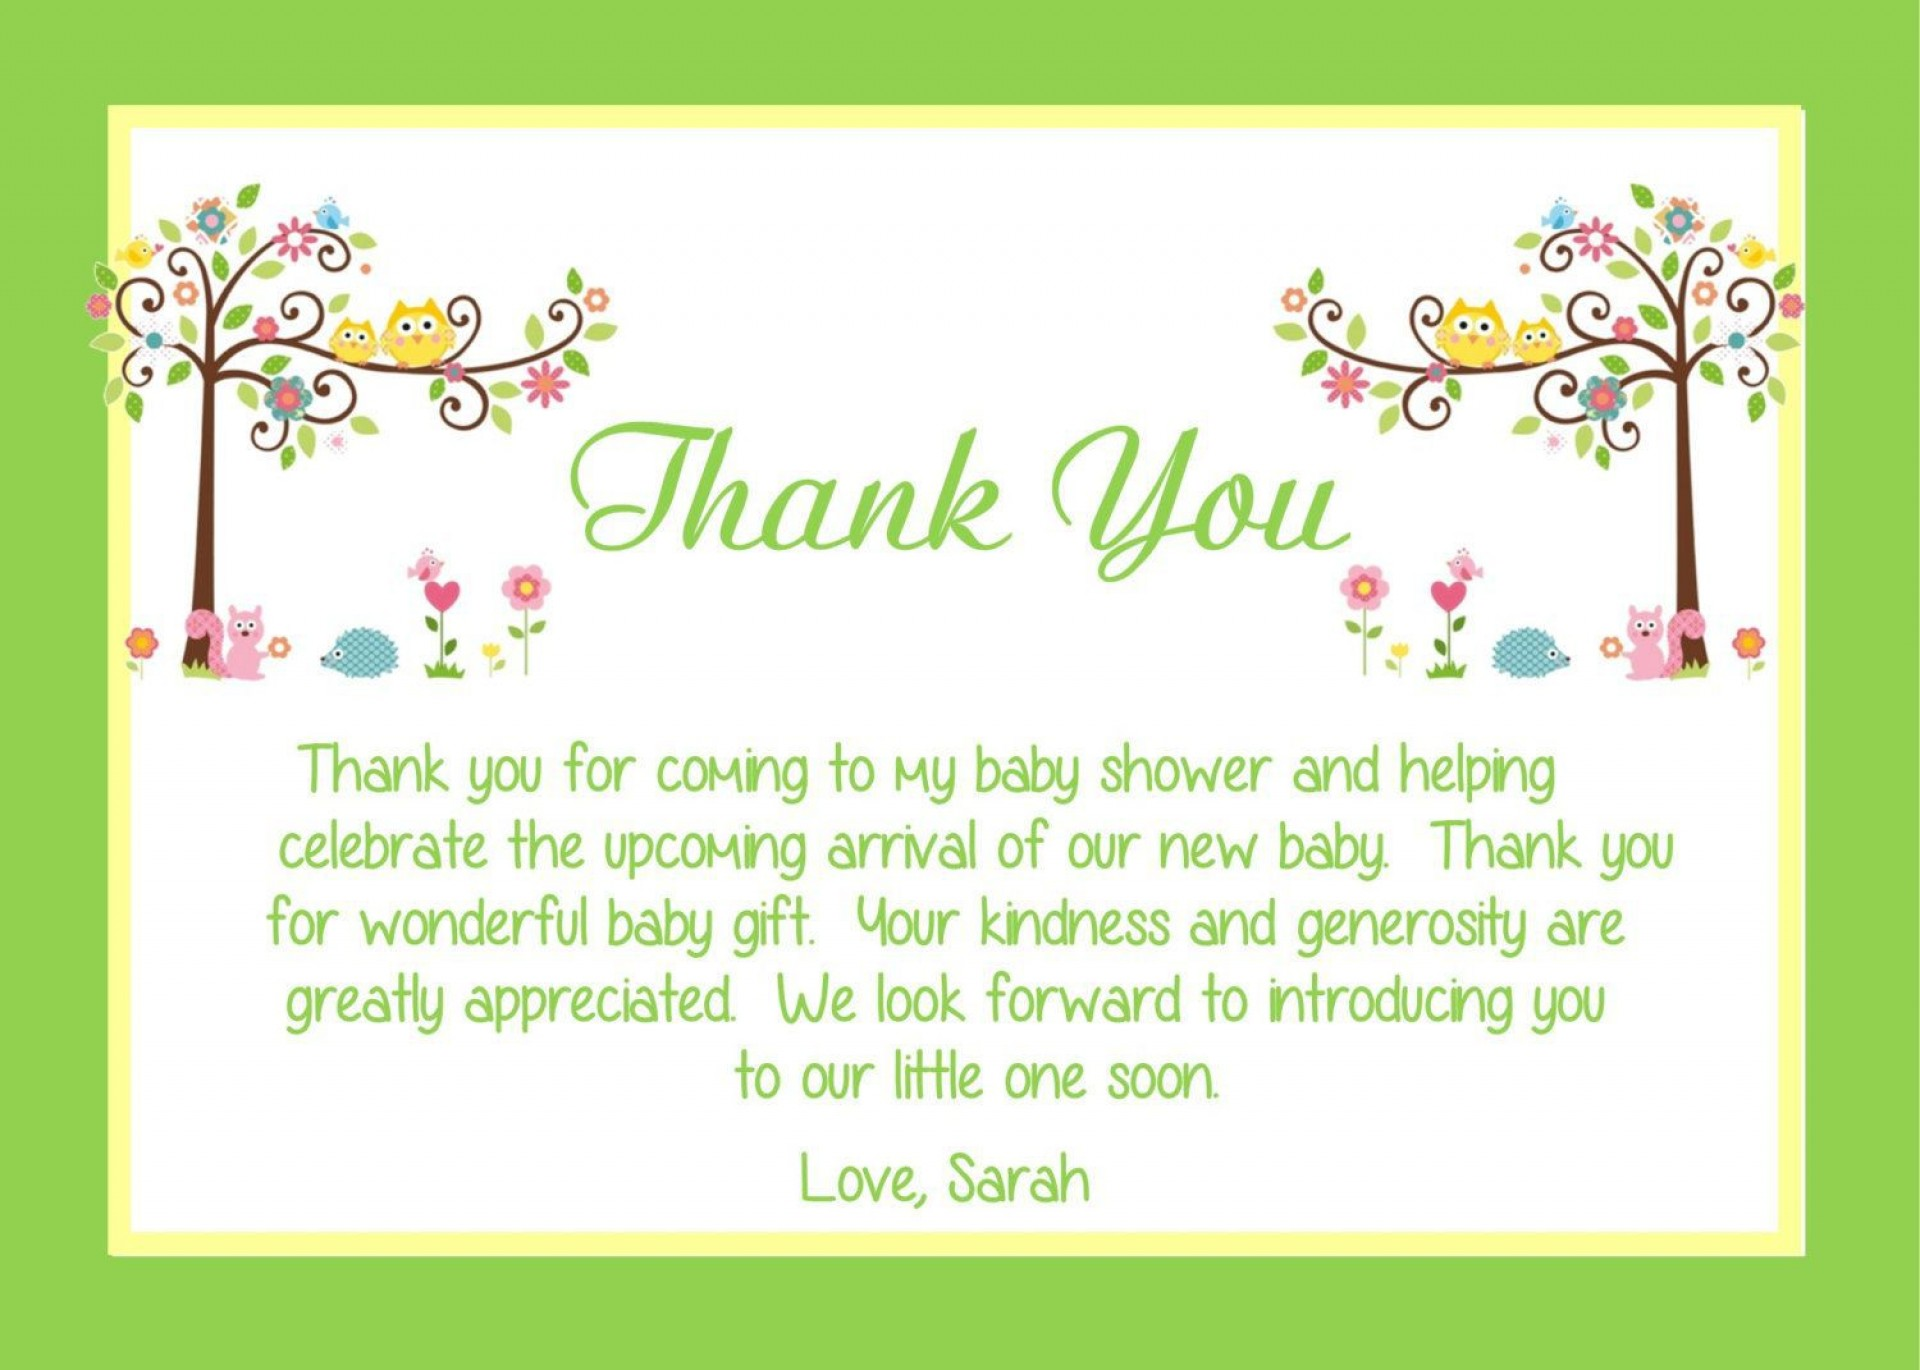 000 Stupendou Thank You Note Template Baby Shower Concept  Card Free Sample For Letter Gift1920